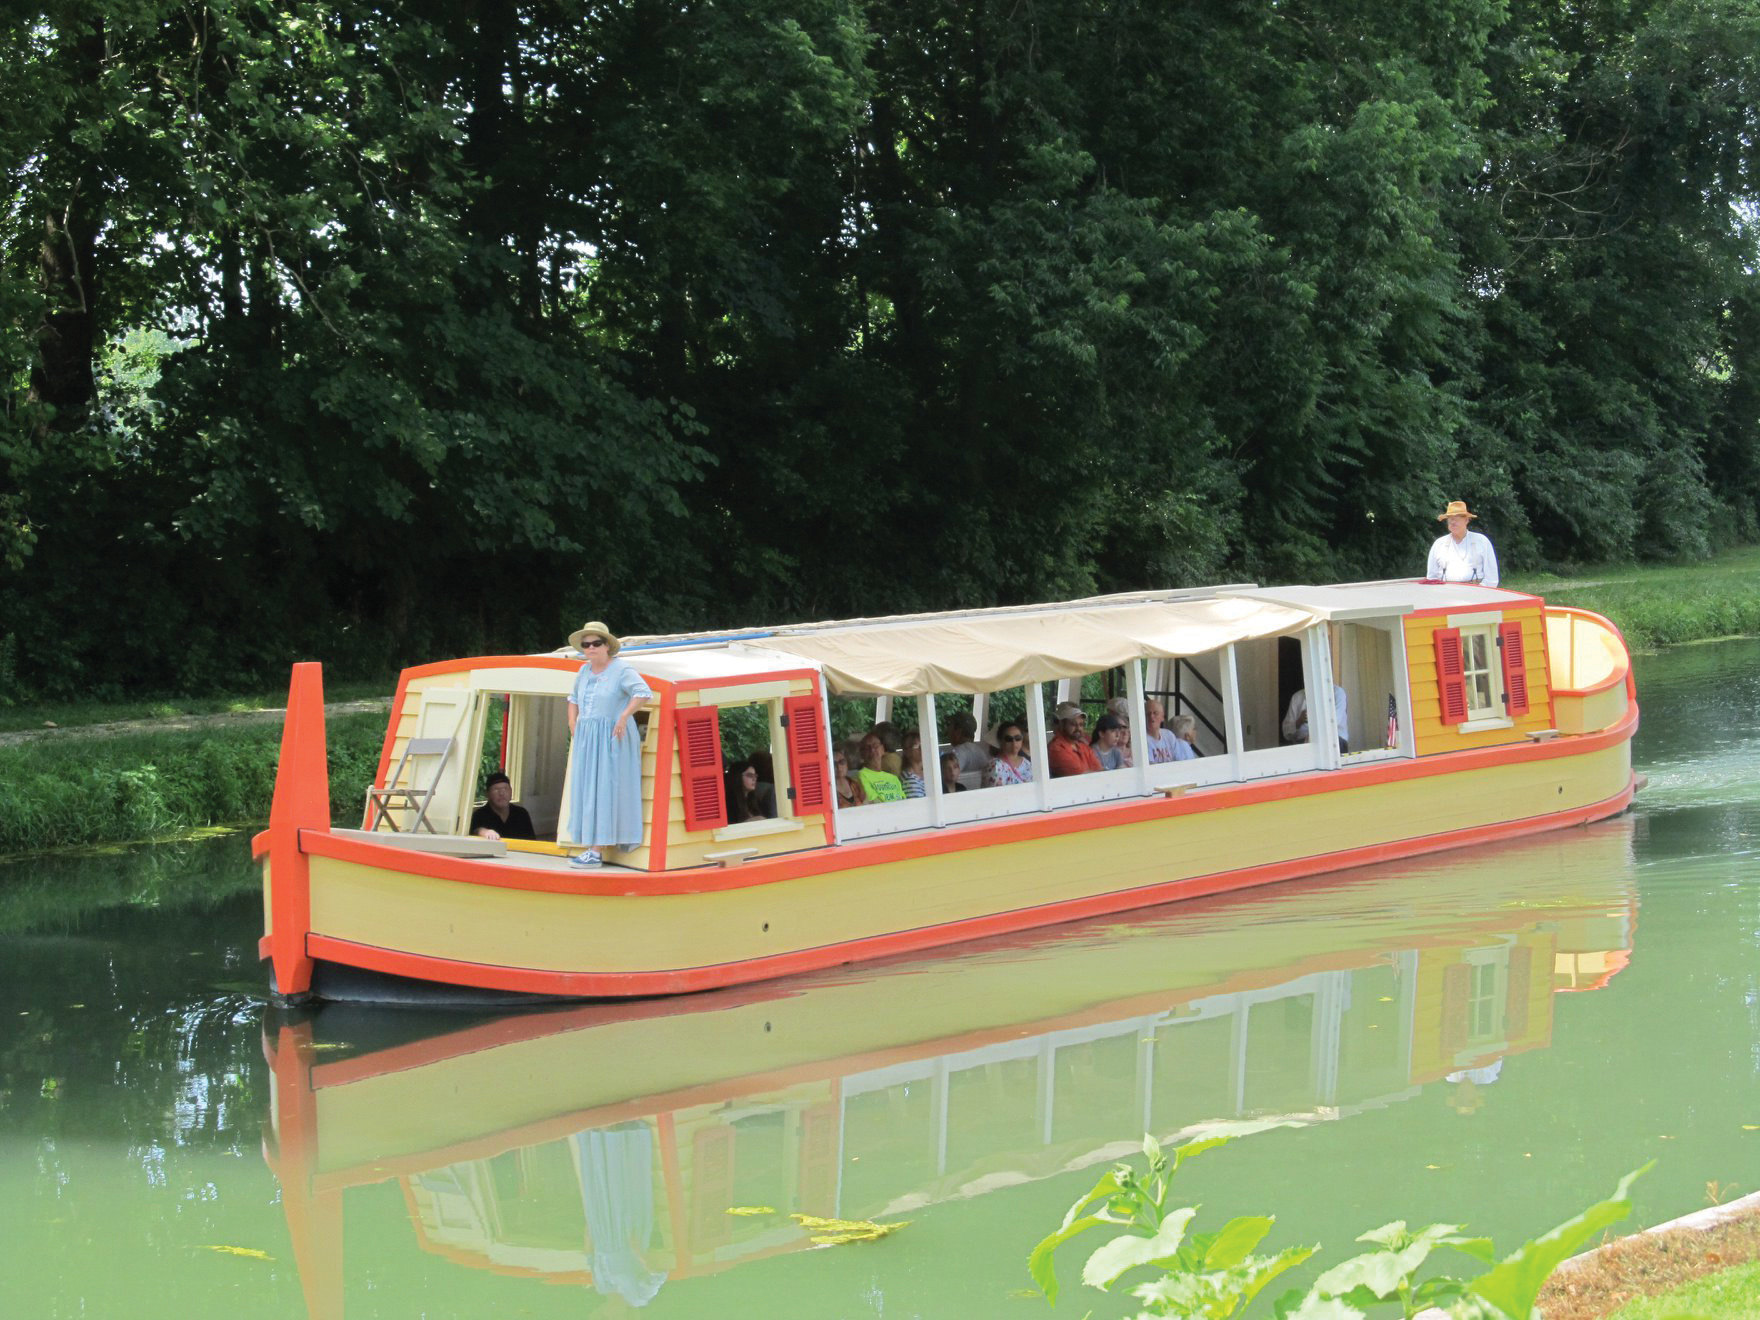 Photo of a canal boat